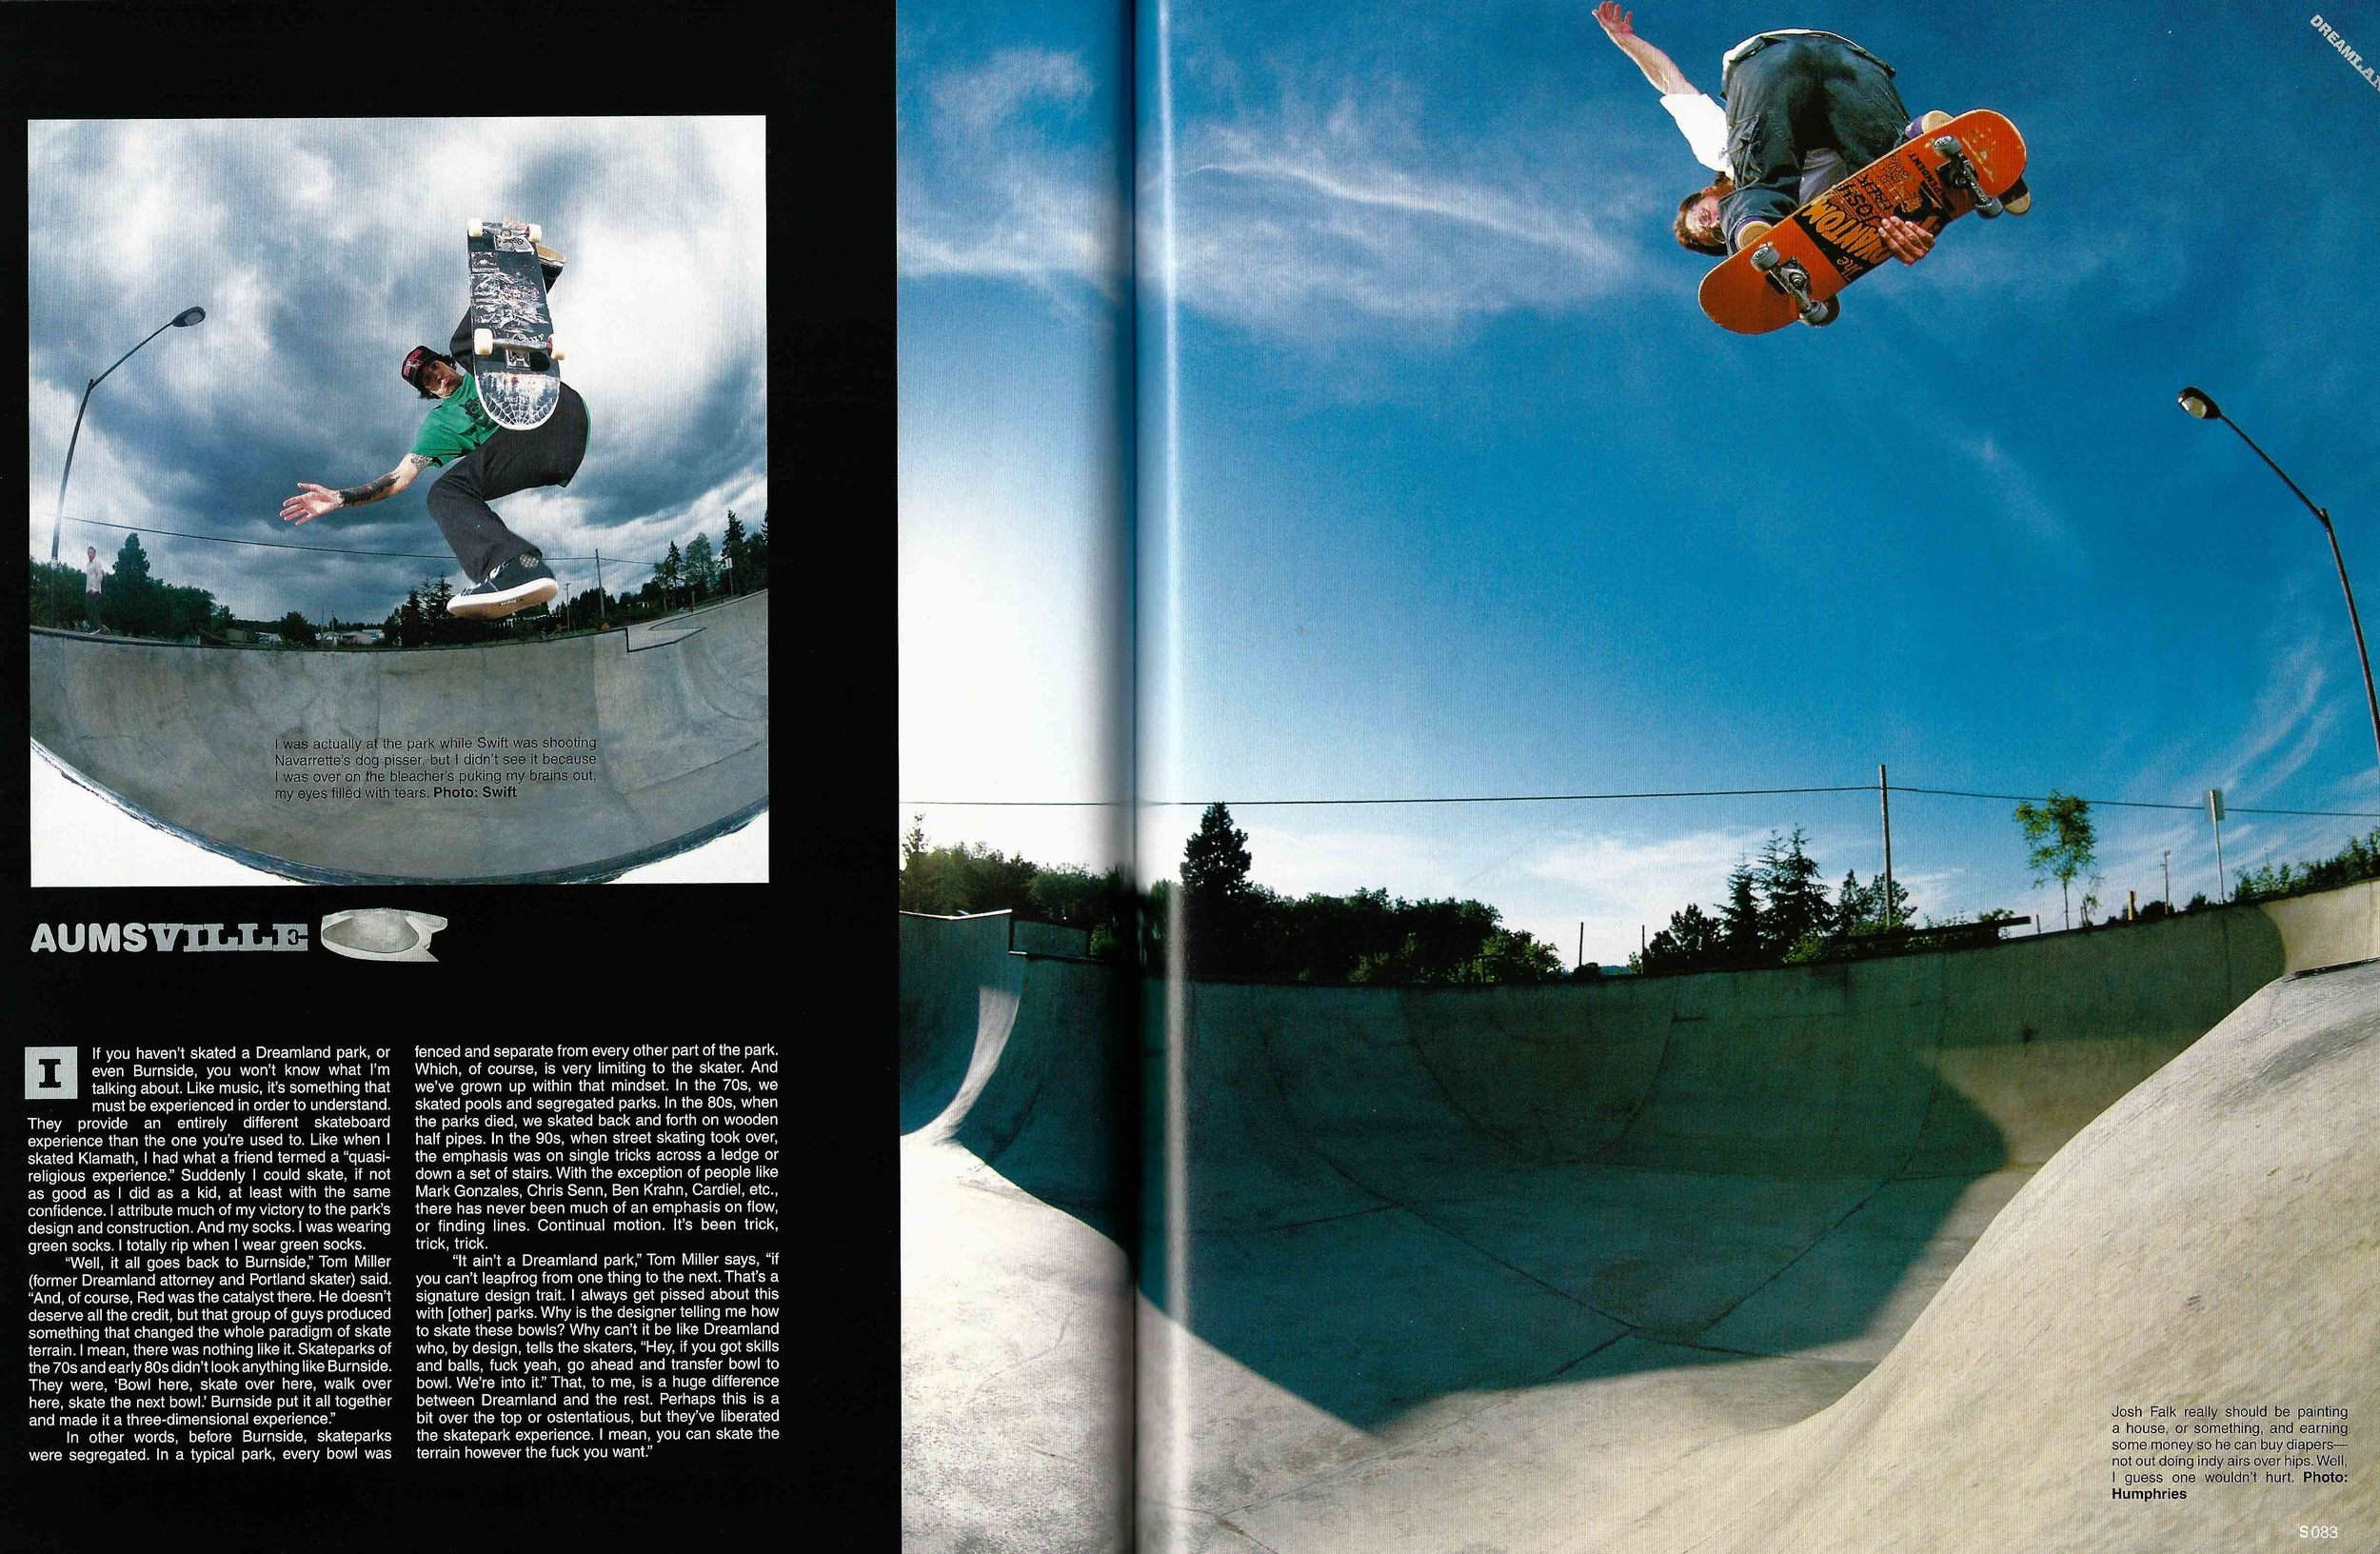 Darren Navarrette and Josh Falk, Aumsville, OR. The Skateboard Mag. Photo: Swift (left) Humphries (right)